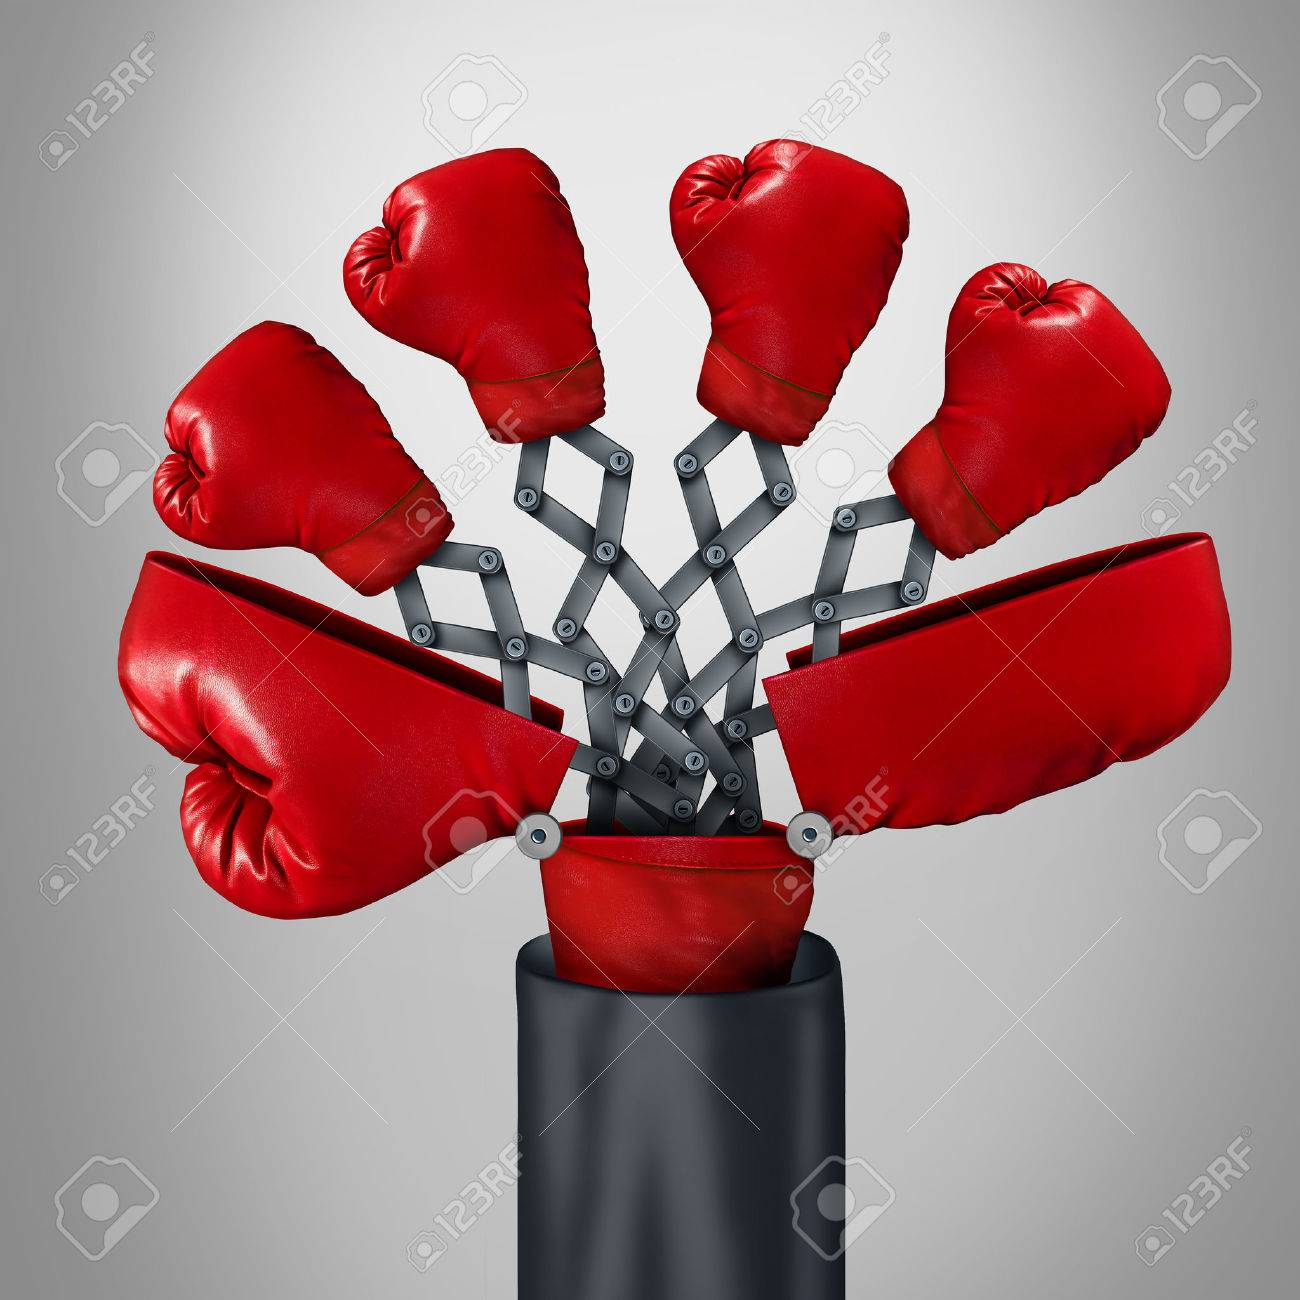 Innovative competitor business concept as an open big boxing glove with four other red gloves emerging out as a game changer strategy symbol for competitive innovator advantage through clever invention. Stock Photo - 49008478